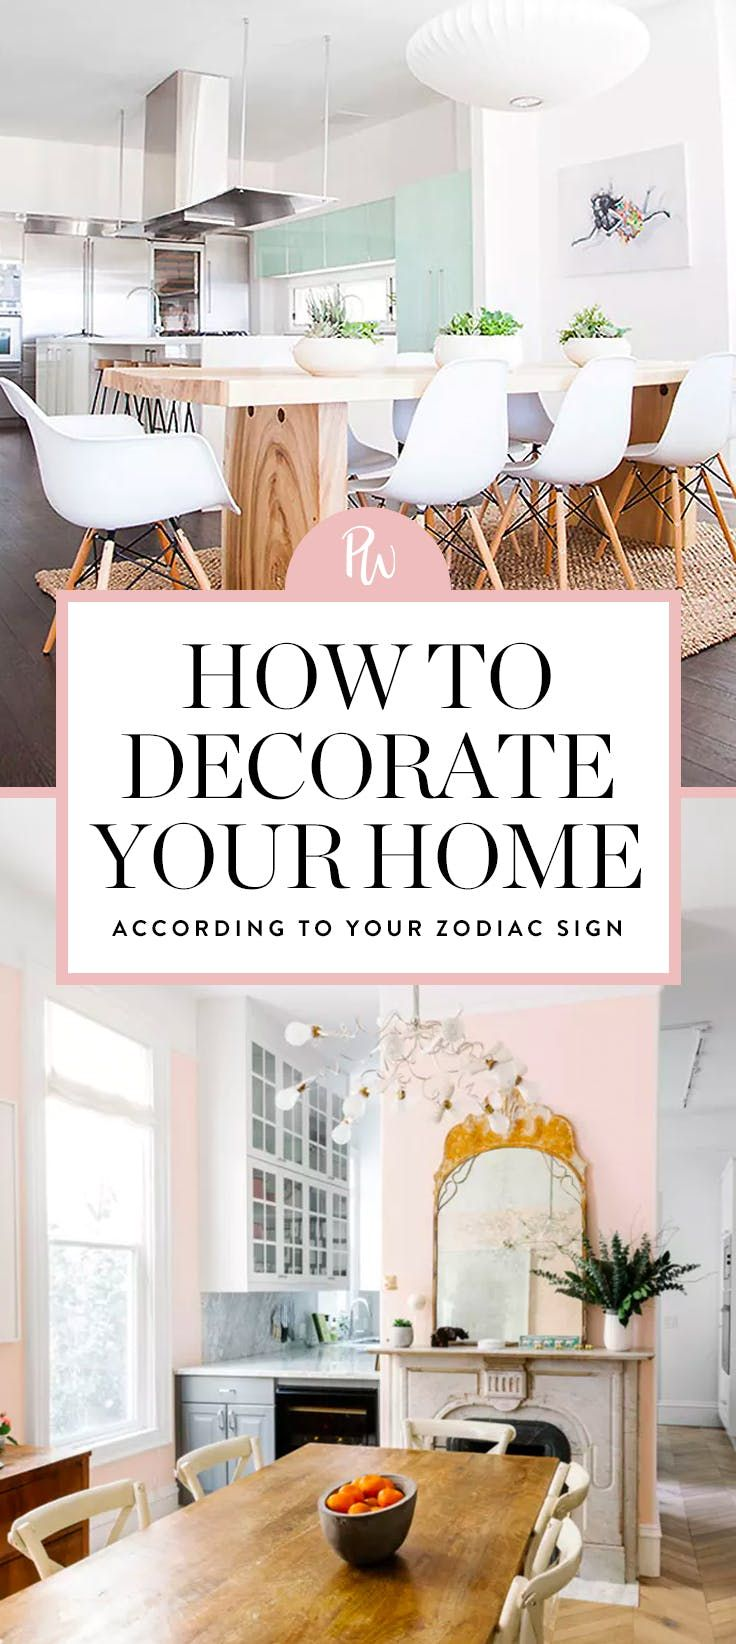 Your Decorating Style Based on Your Zodiac Sign   Home decor ...